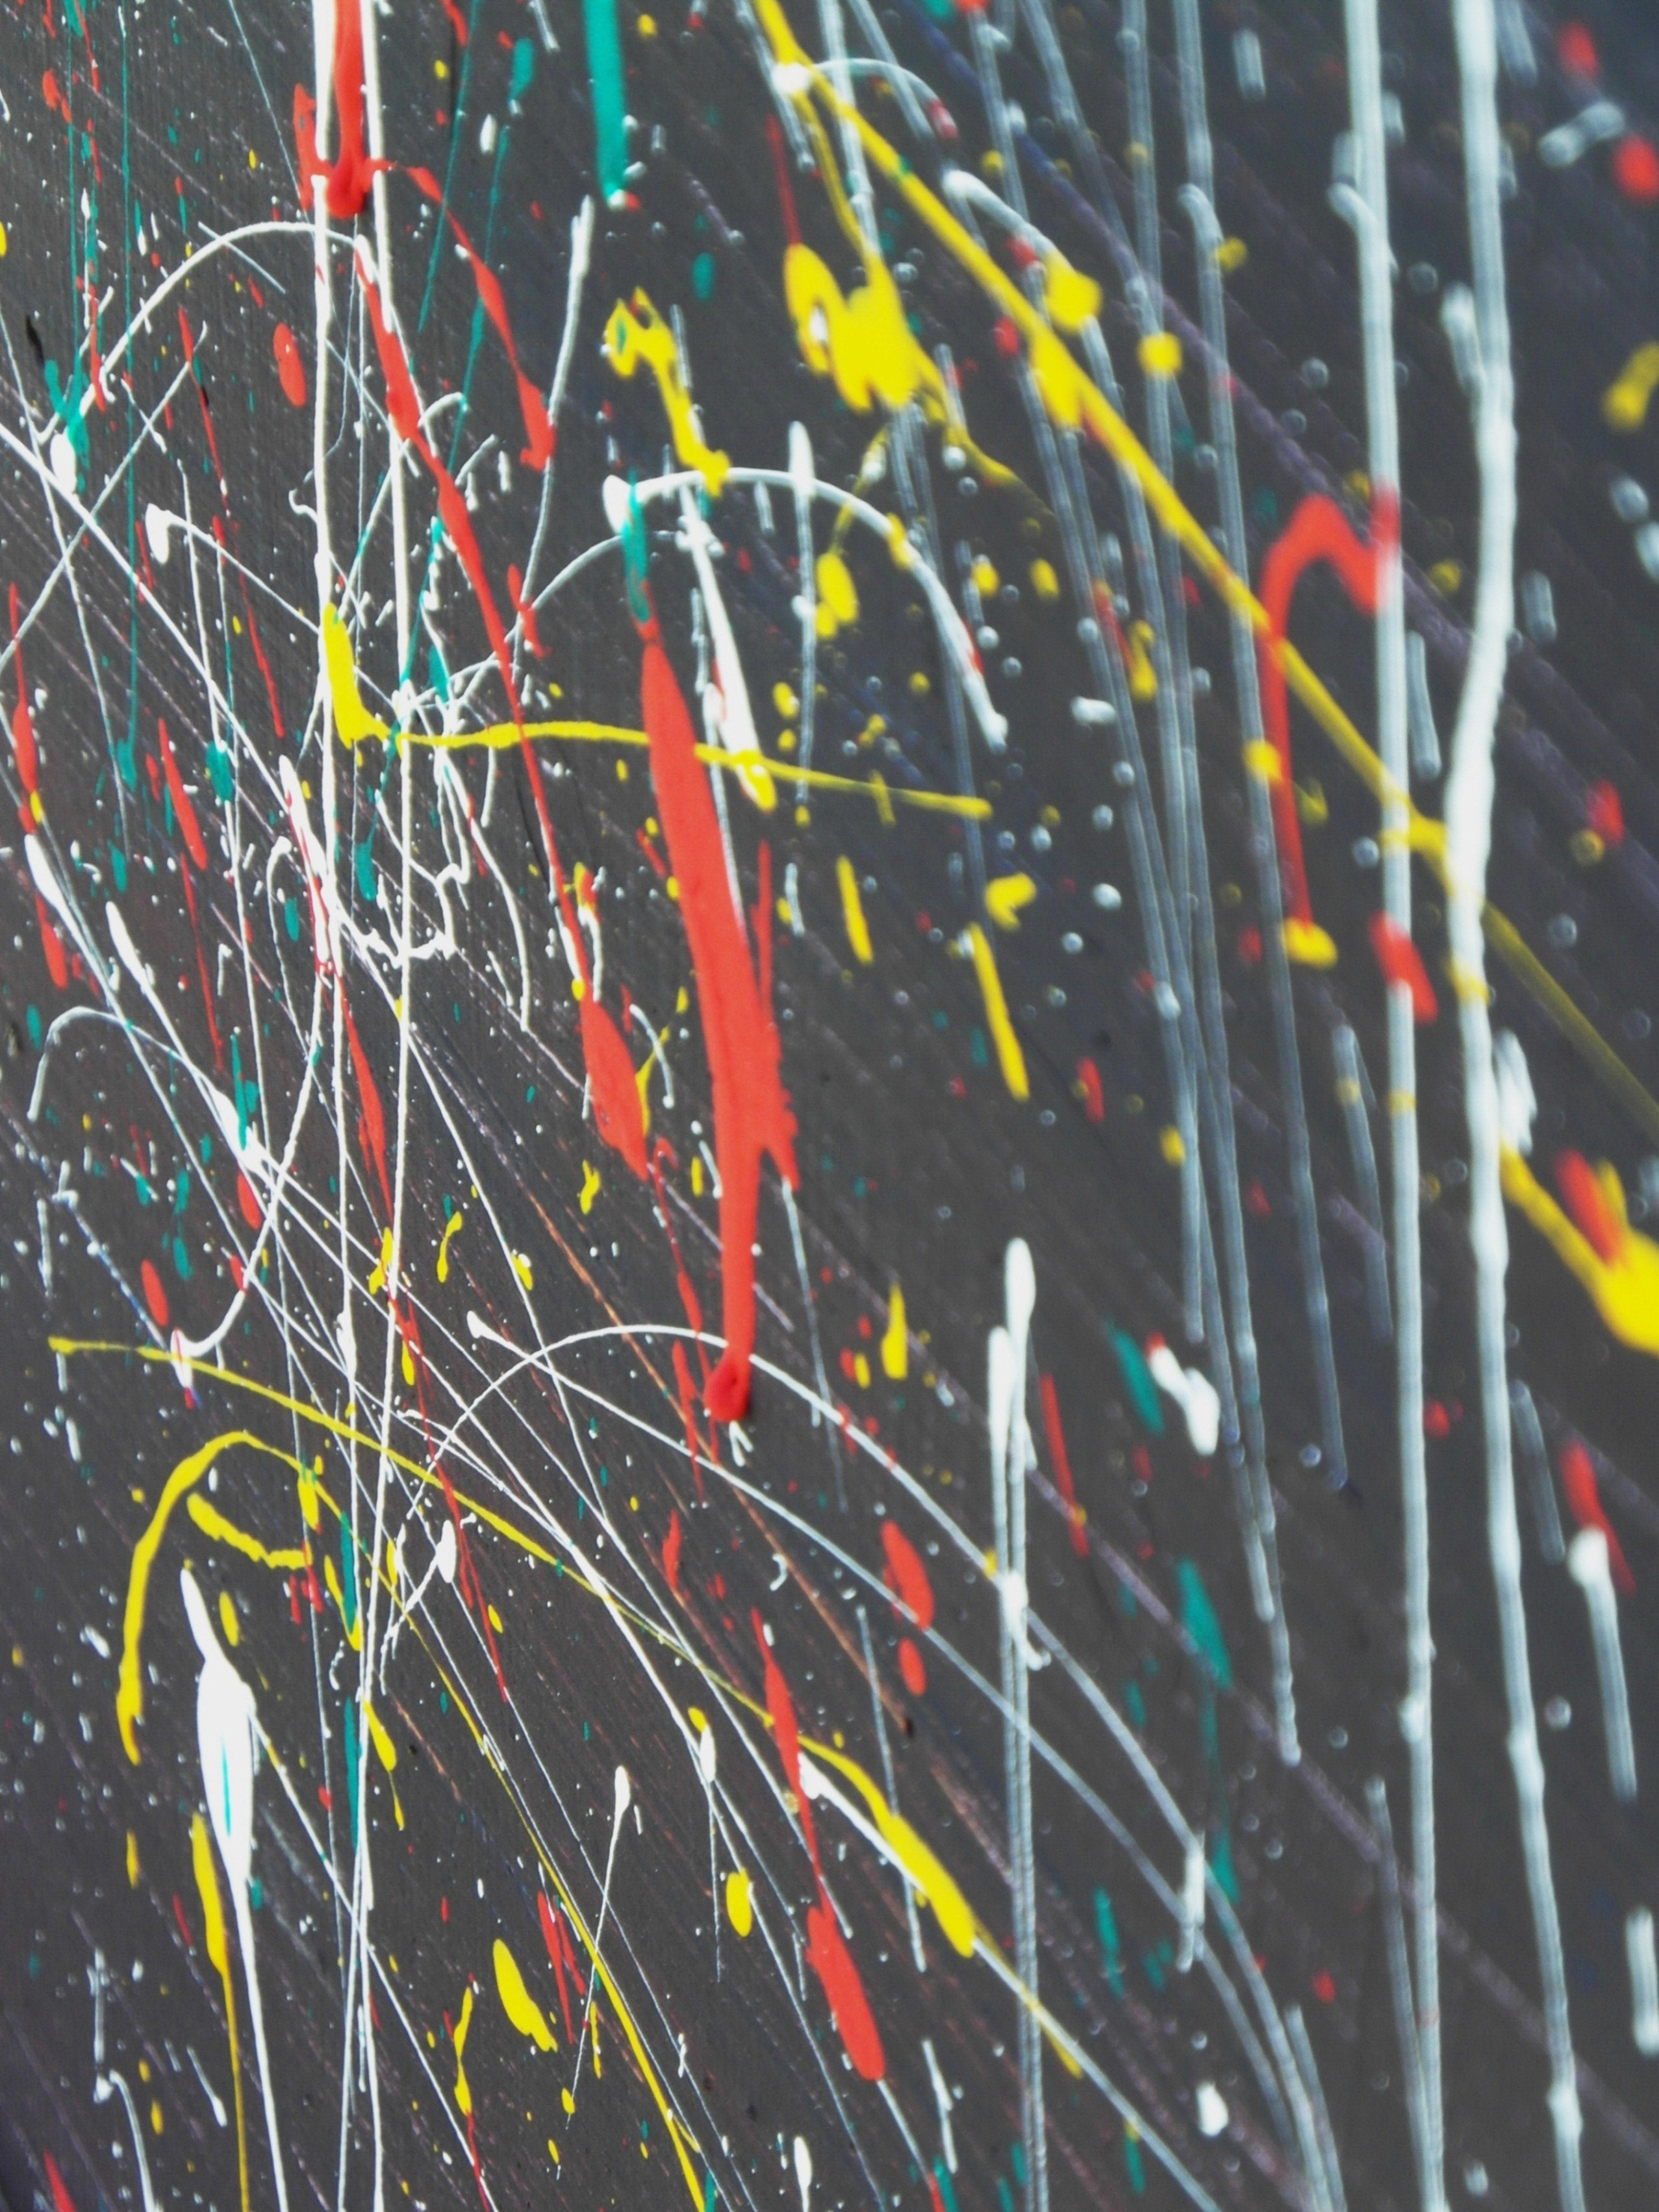 Abstract paint dripping background photo